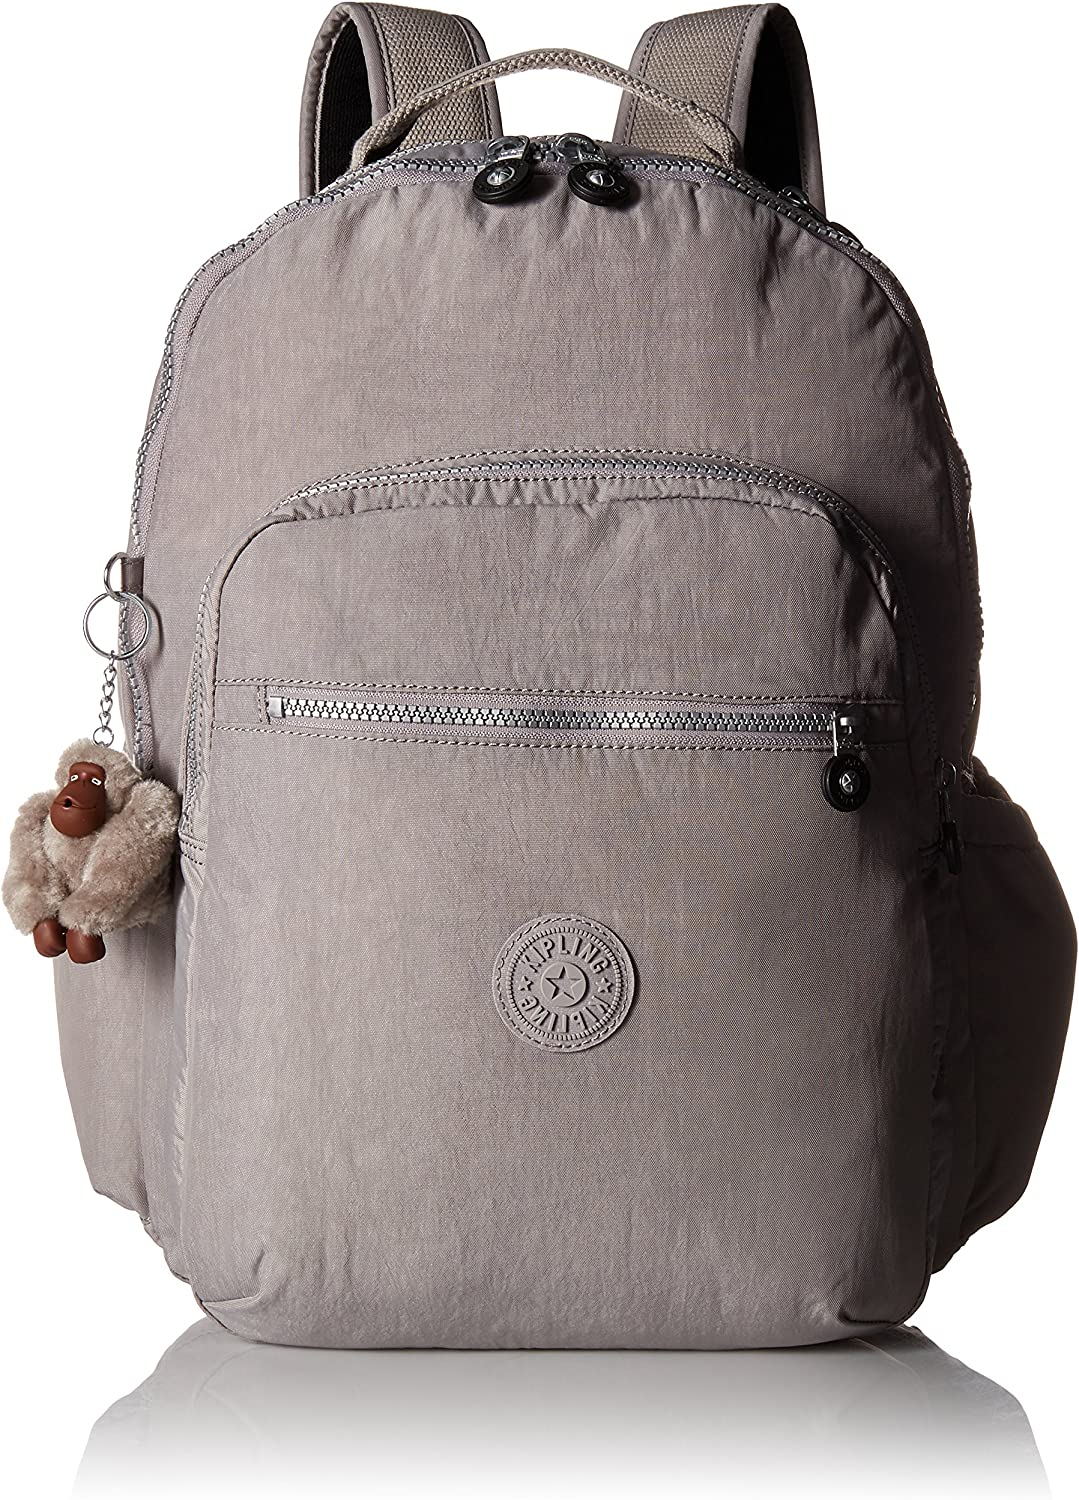 Top 7 Kipling Seoul Go Laptop Backpack